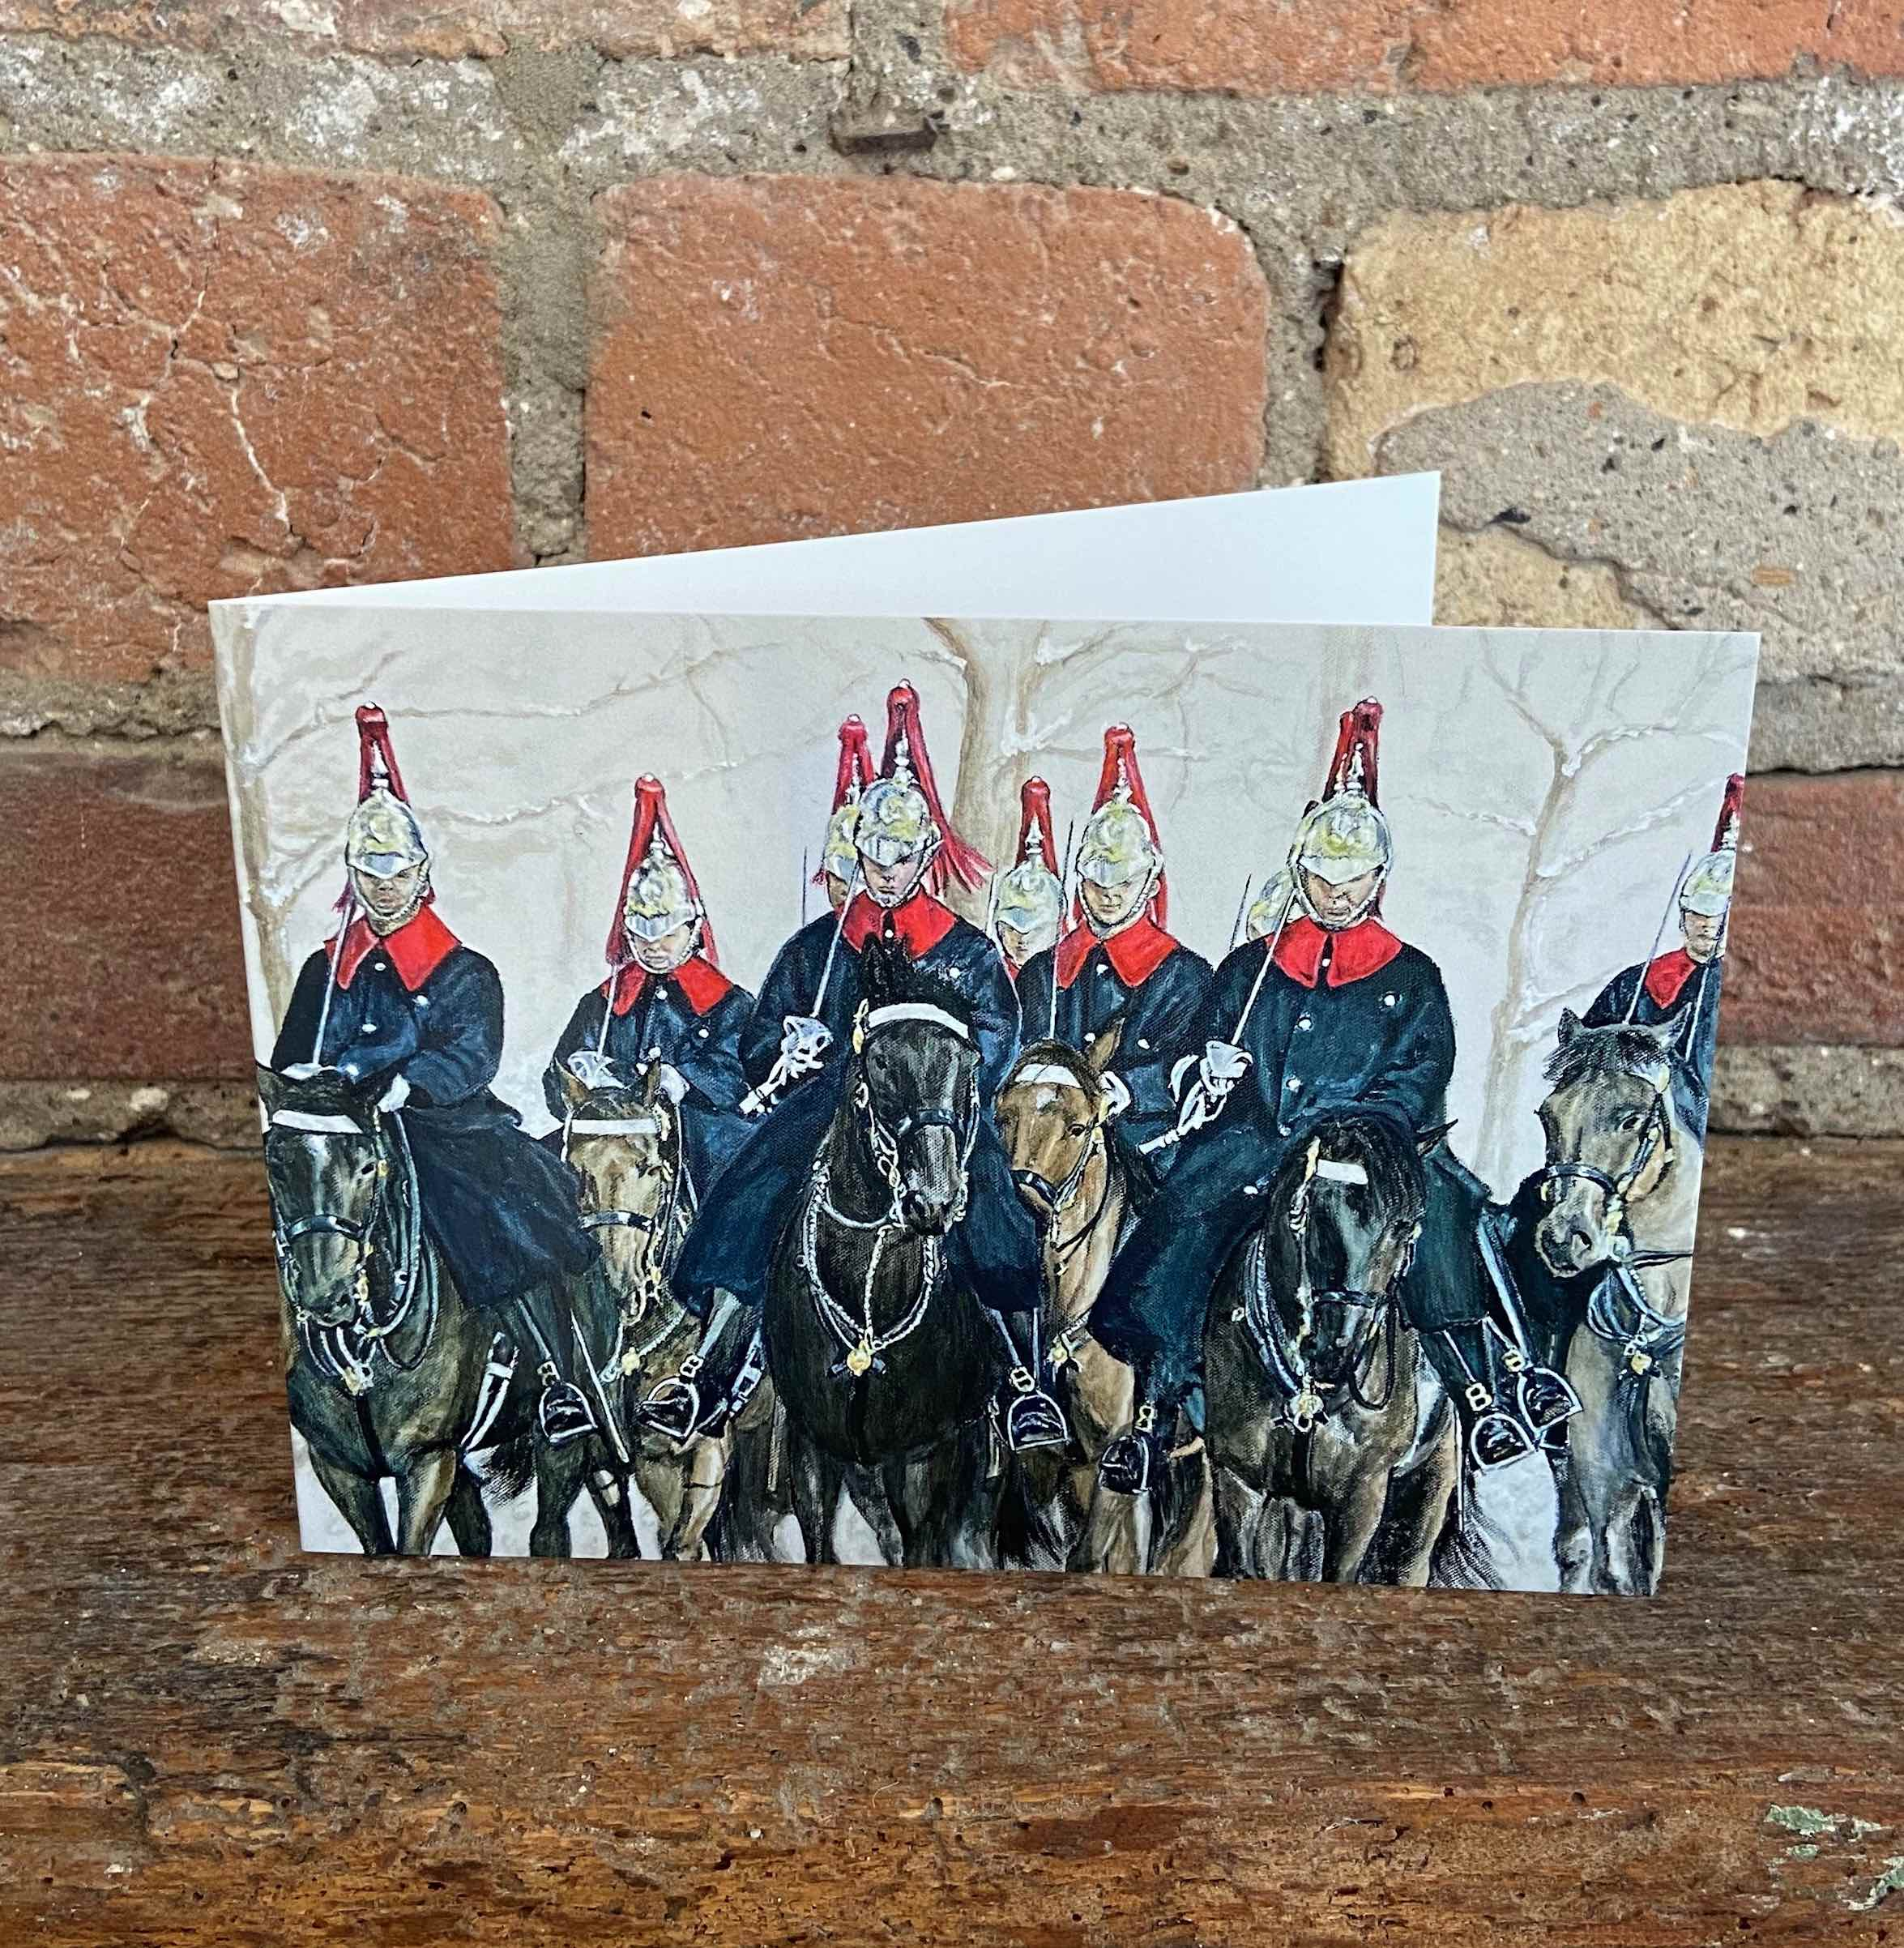 Artist takes charge of cavalry Christmas card